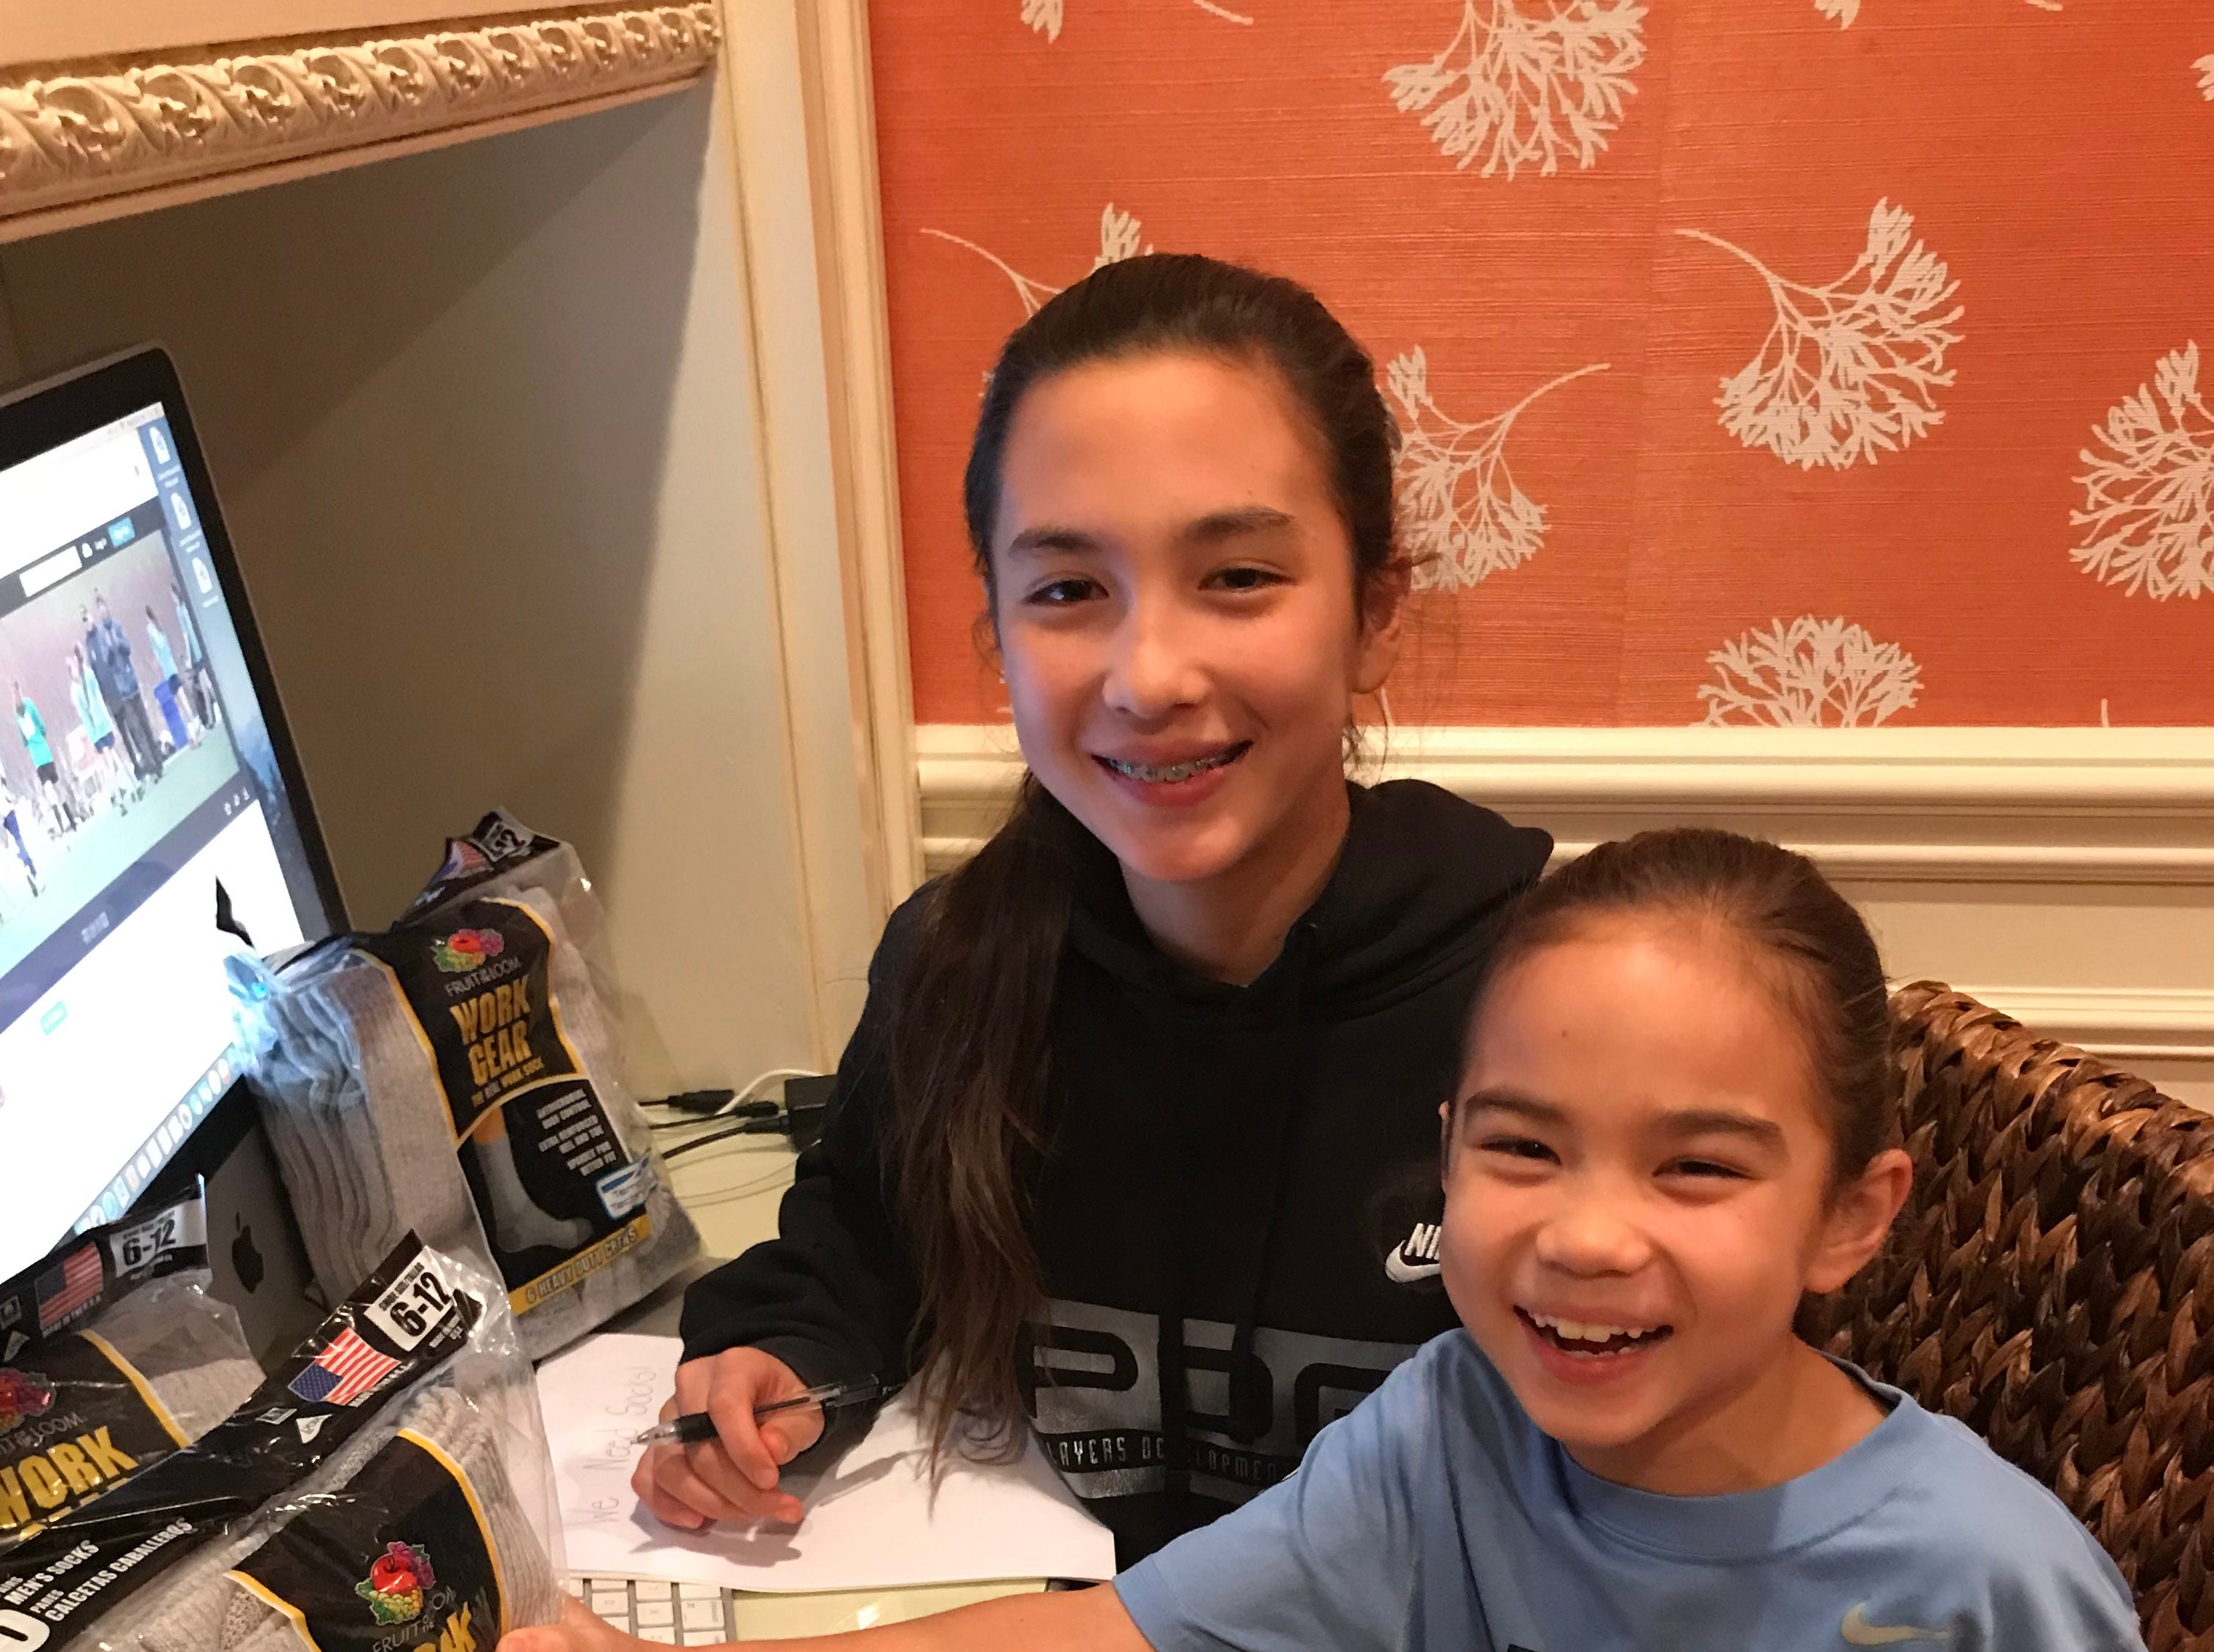 Ainsley and Adele Moy made flyers to distribute within their neighborhood to collect more socks.